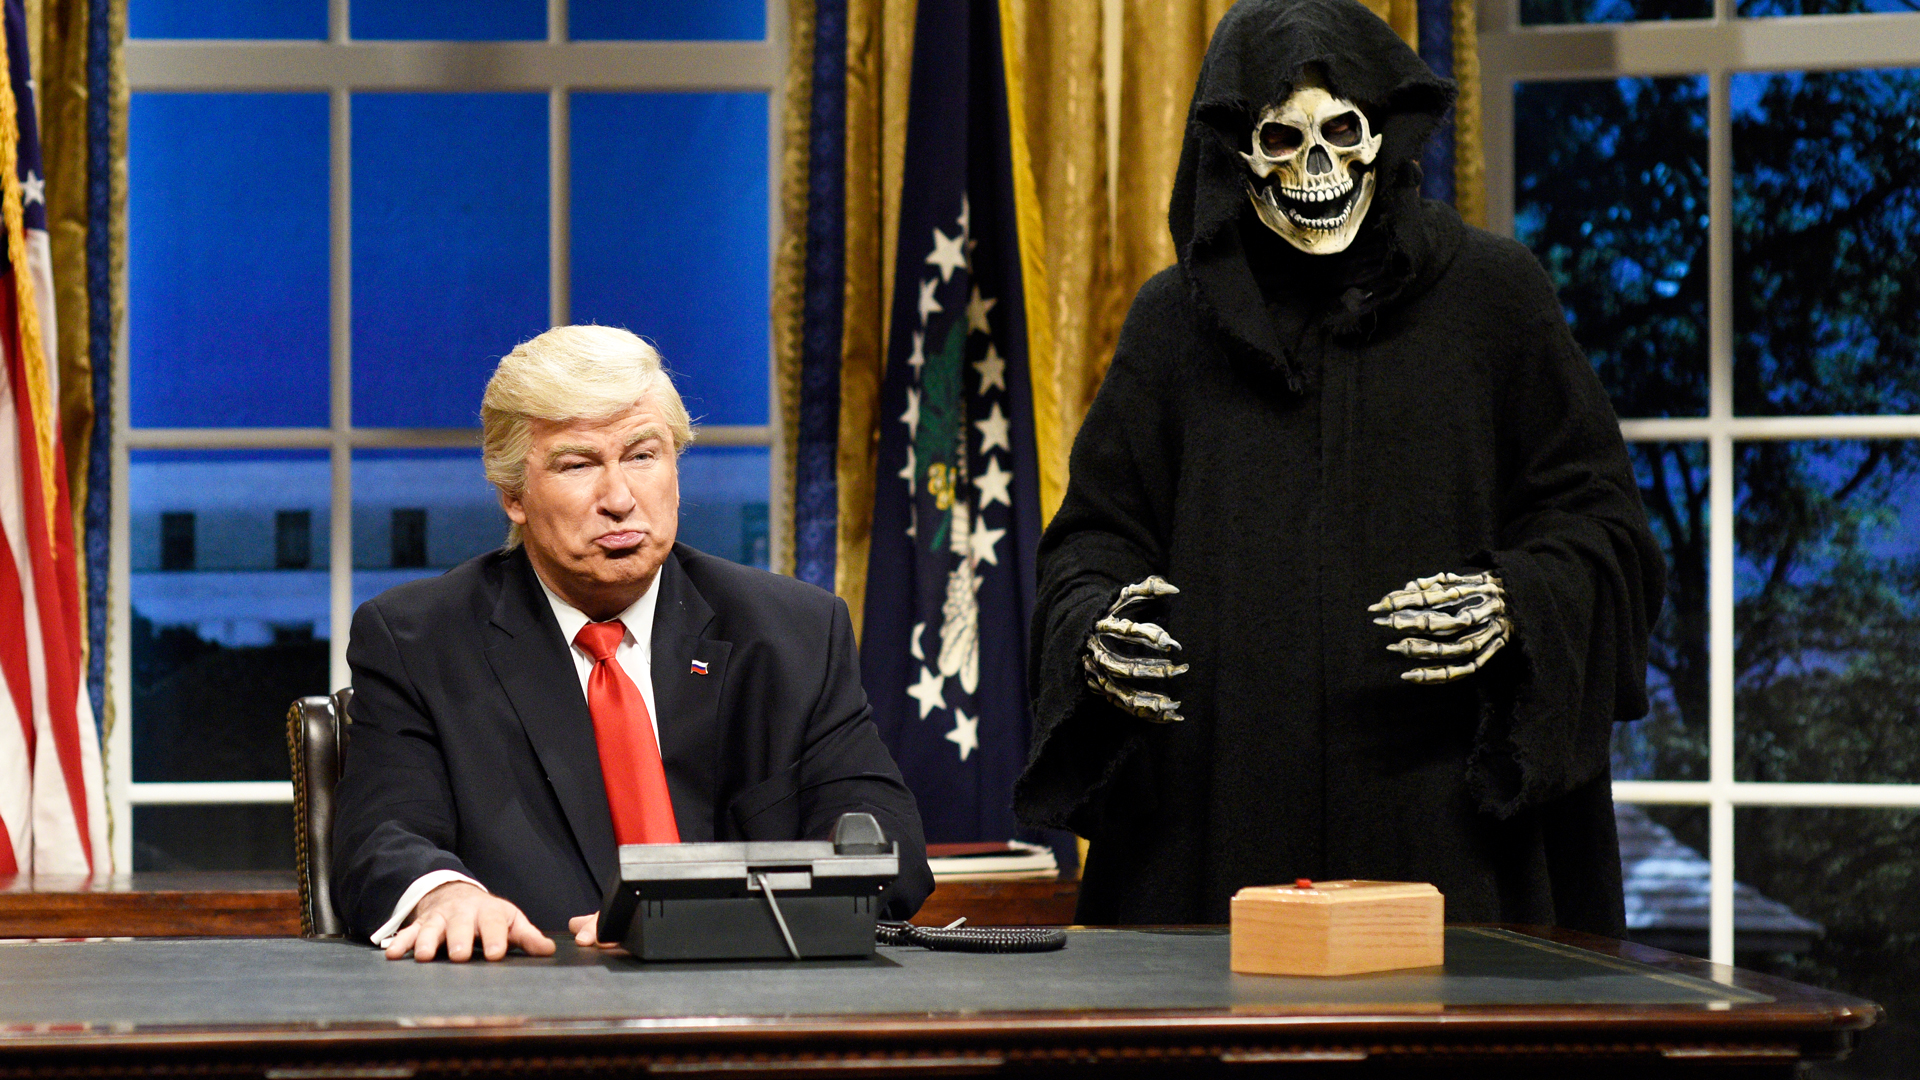 Alec Baldwin as President Trump on SNL. Source: NBC